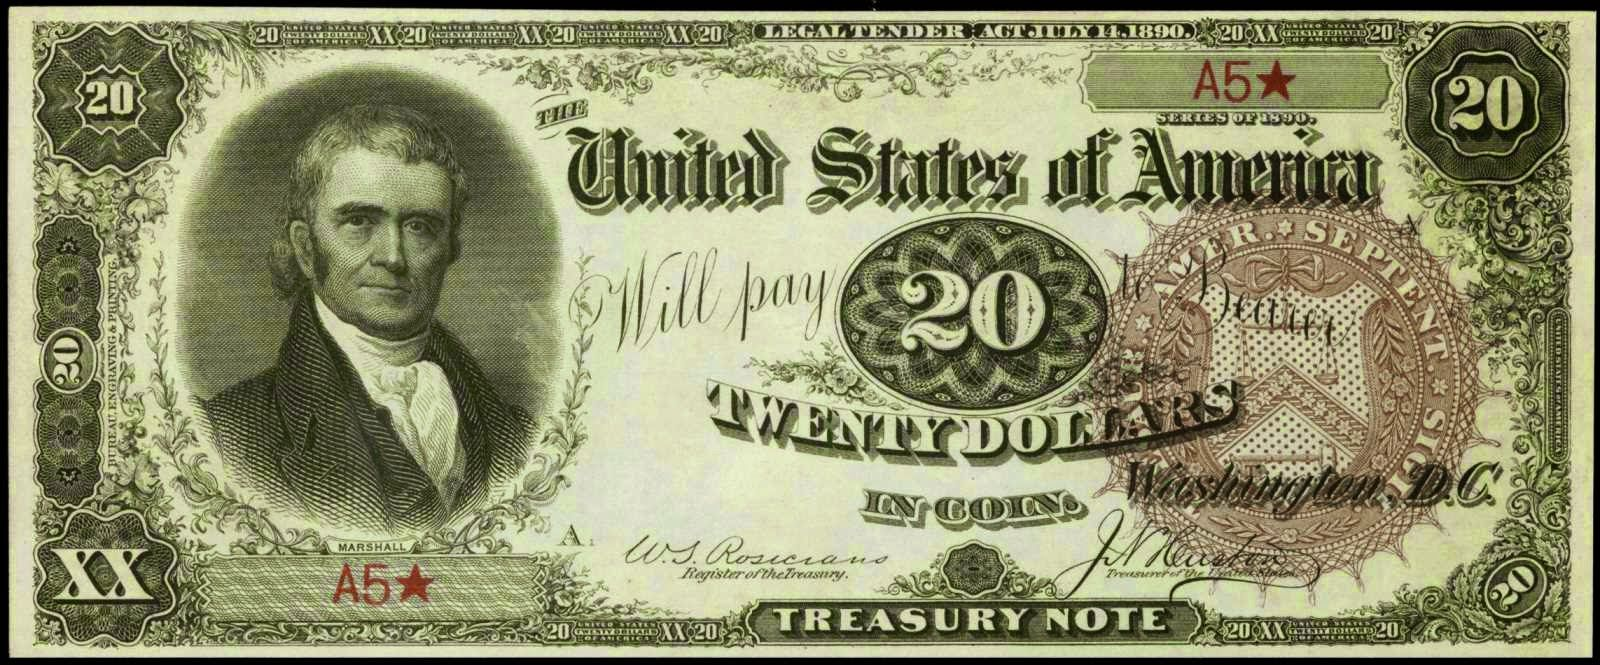 1890 Twenty Dollar Treasury Or Coin Note World Banknotes Coins Old Money Currency Notes World Paper Money Paper Currency Money Notes Dollar